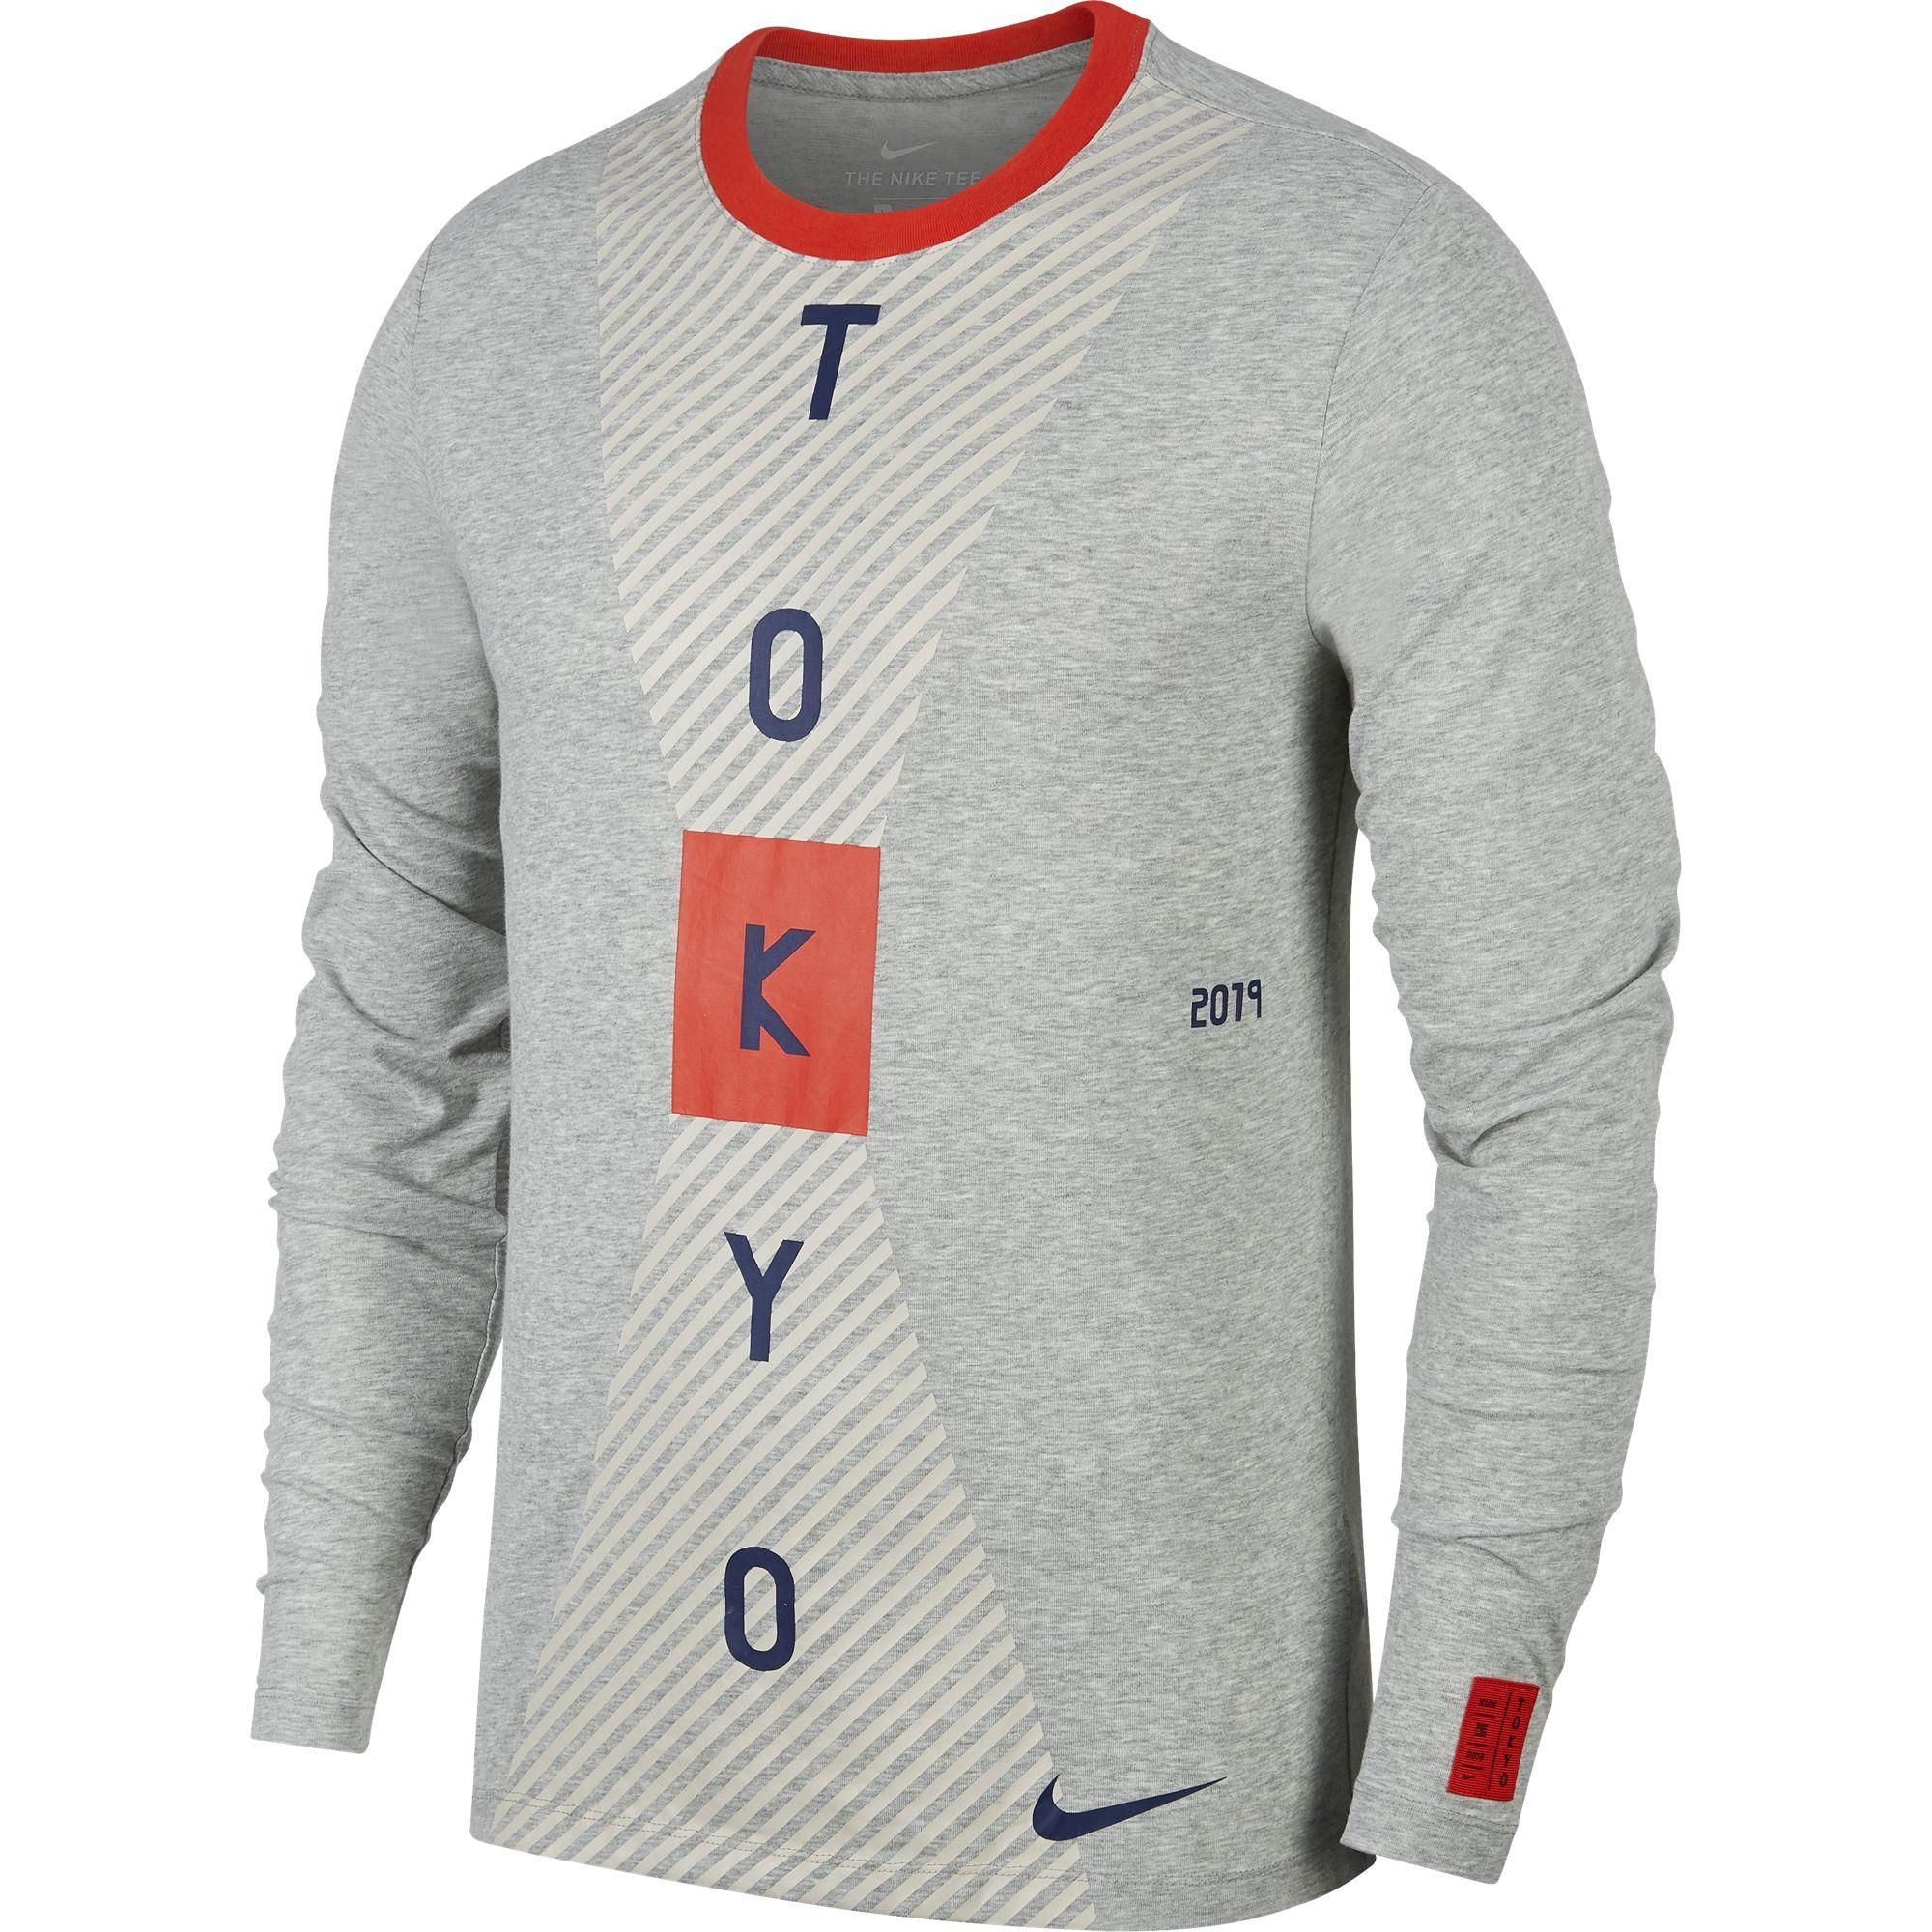 Nike Sweater Dry Fit  Tokyo